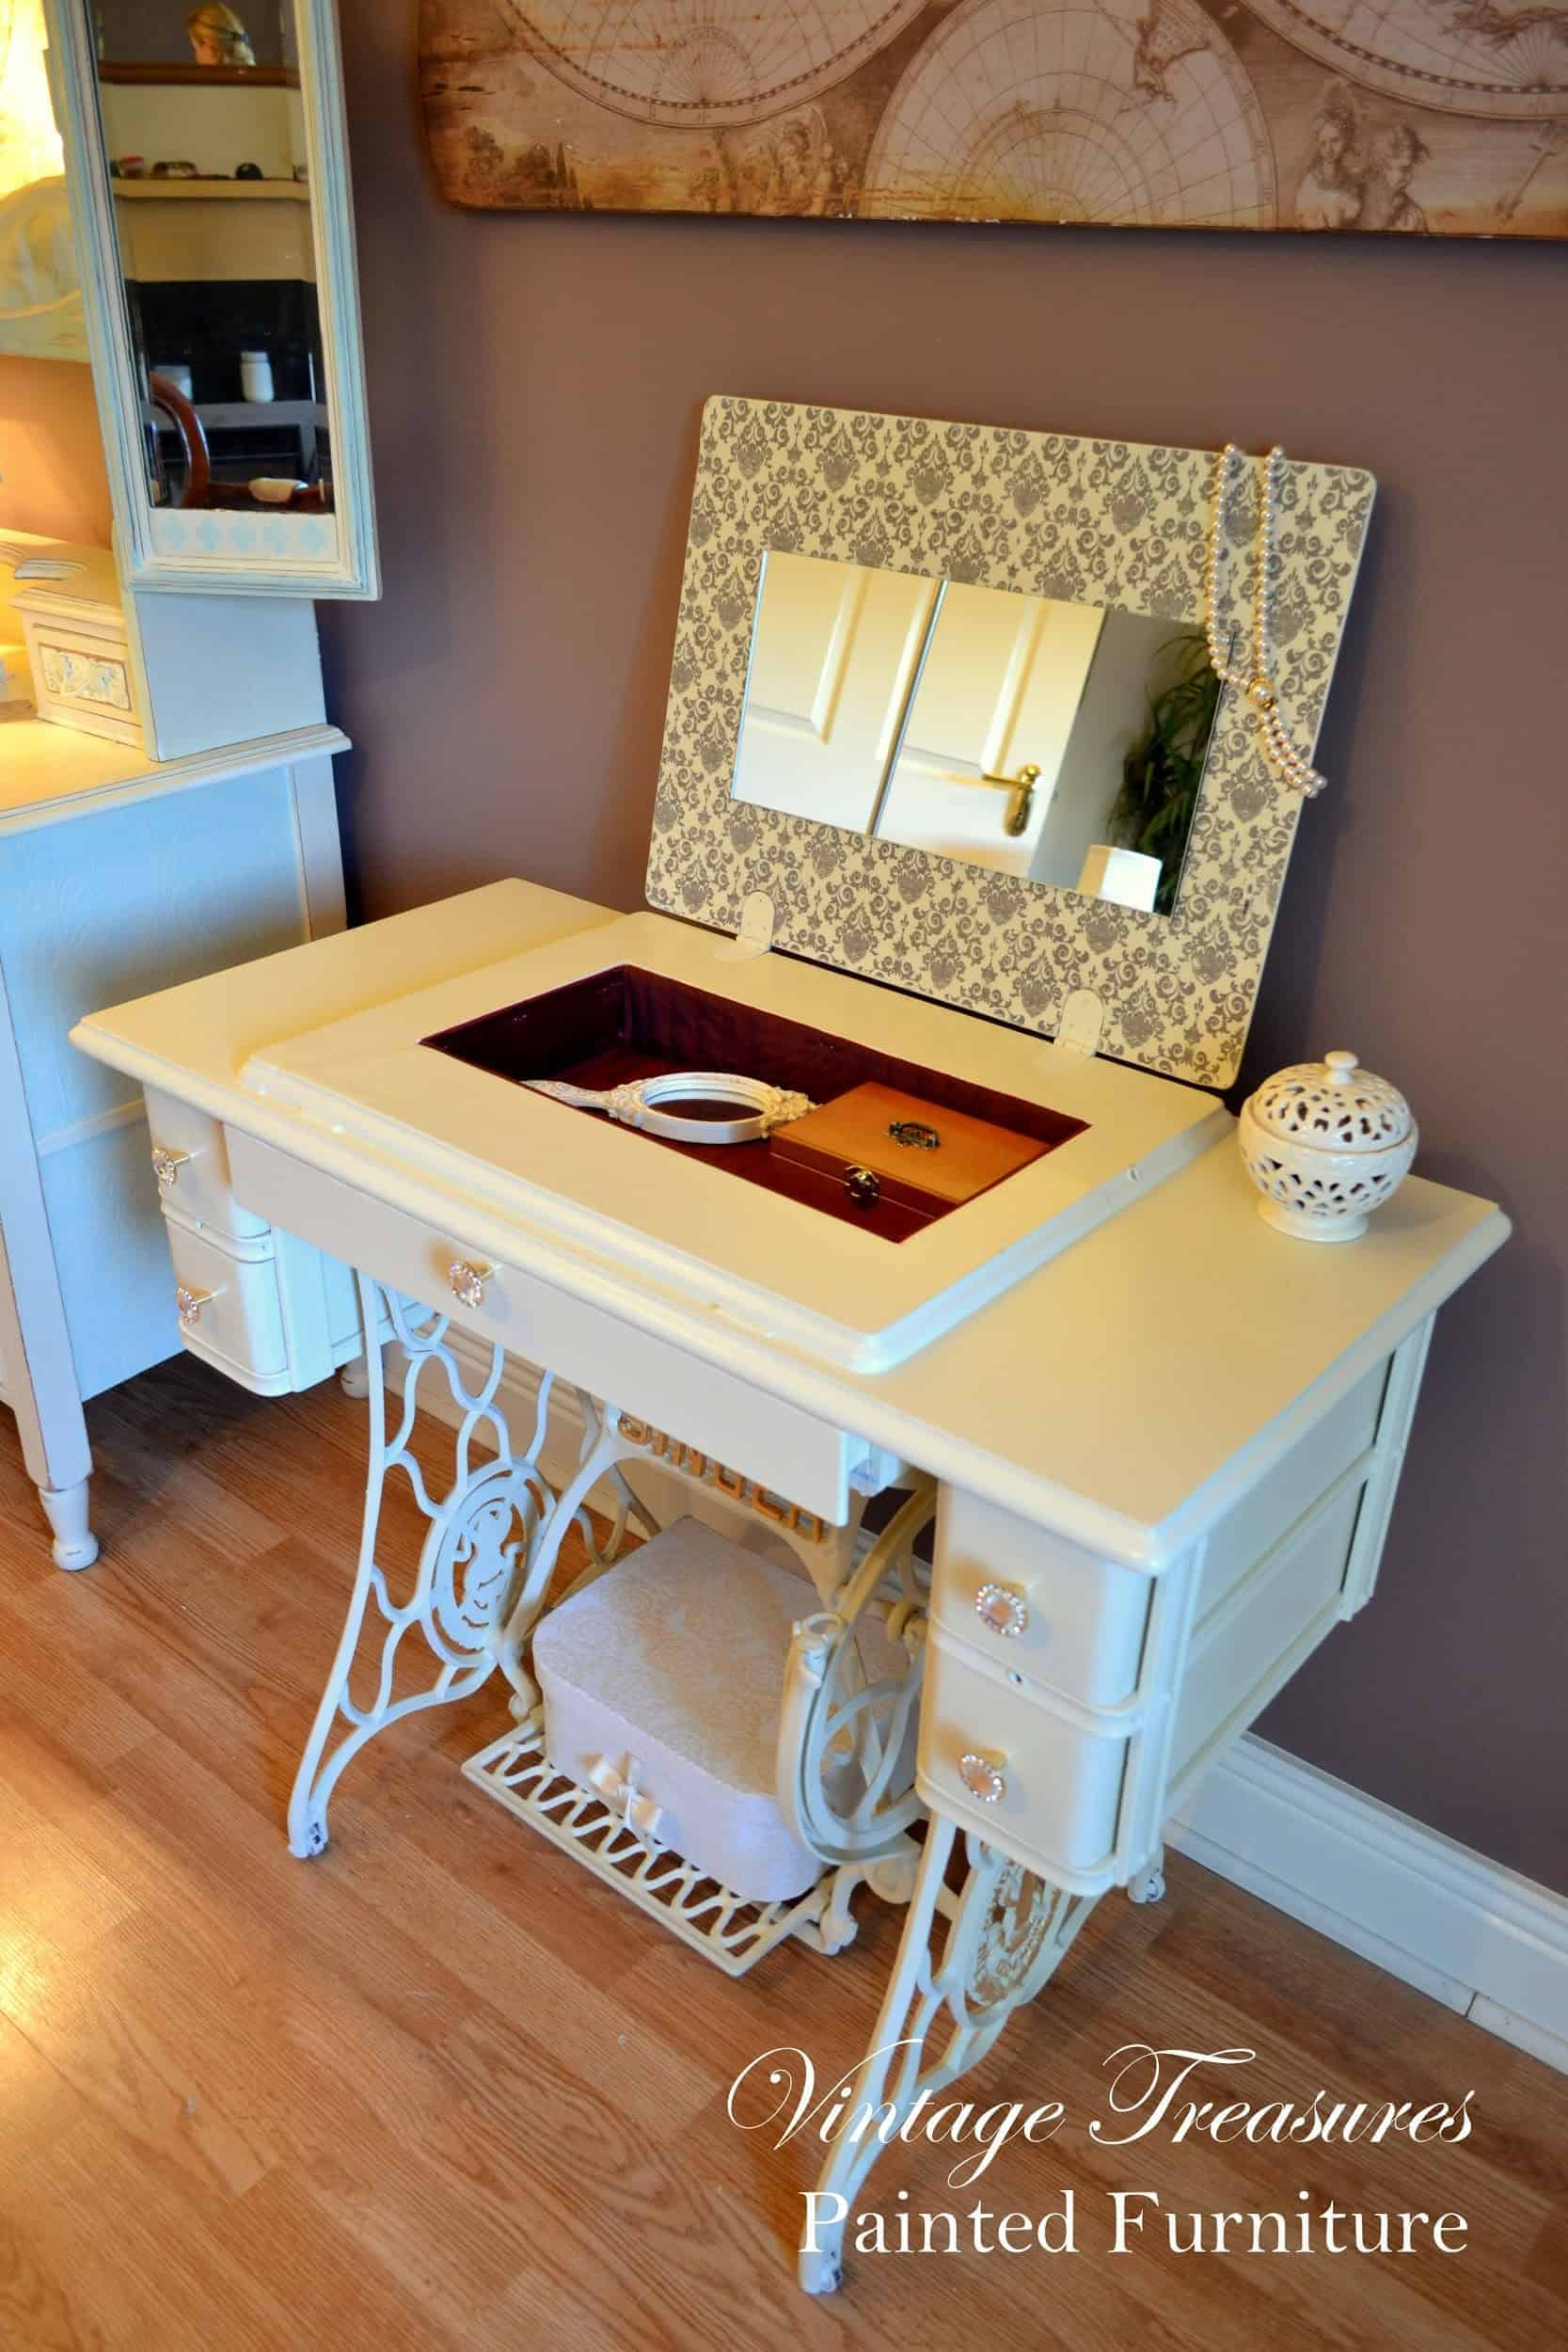 recycled-singer-sewing-machine-stand-vanity-table-2714603